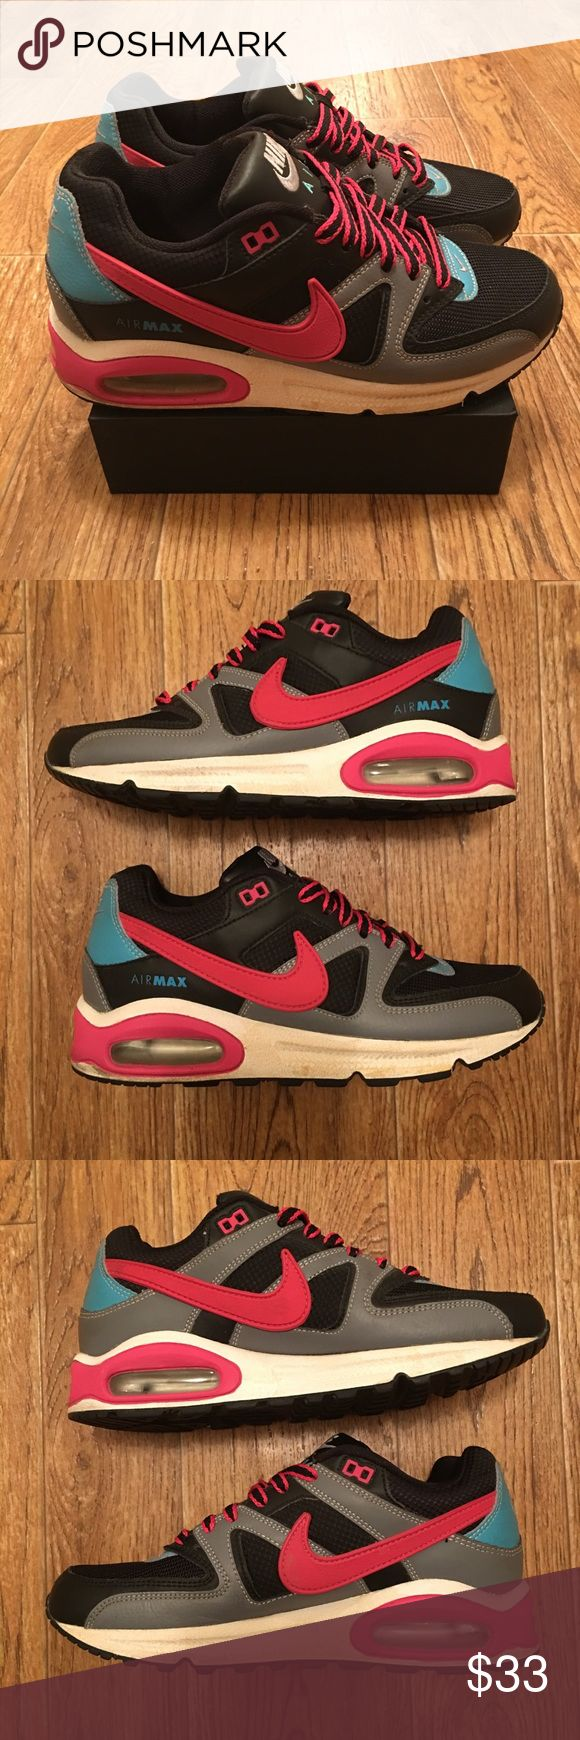 [Nike] Air Max Command Women's (used) Sneakers Used Nike Air Max Command womens sneakers.  Good condition overall, some fading/scratches along bottom white part of shoes (see photos).  Women's Size 7.5  **Offers Accepted **     468-A92 Nike Shoes Sneakers